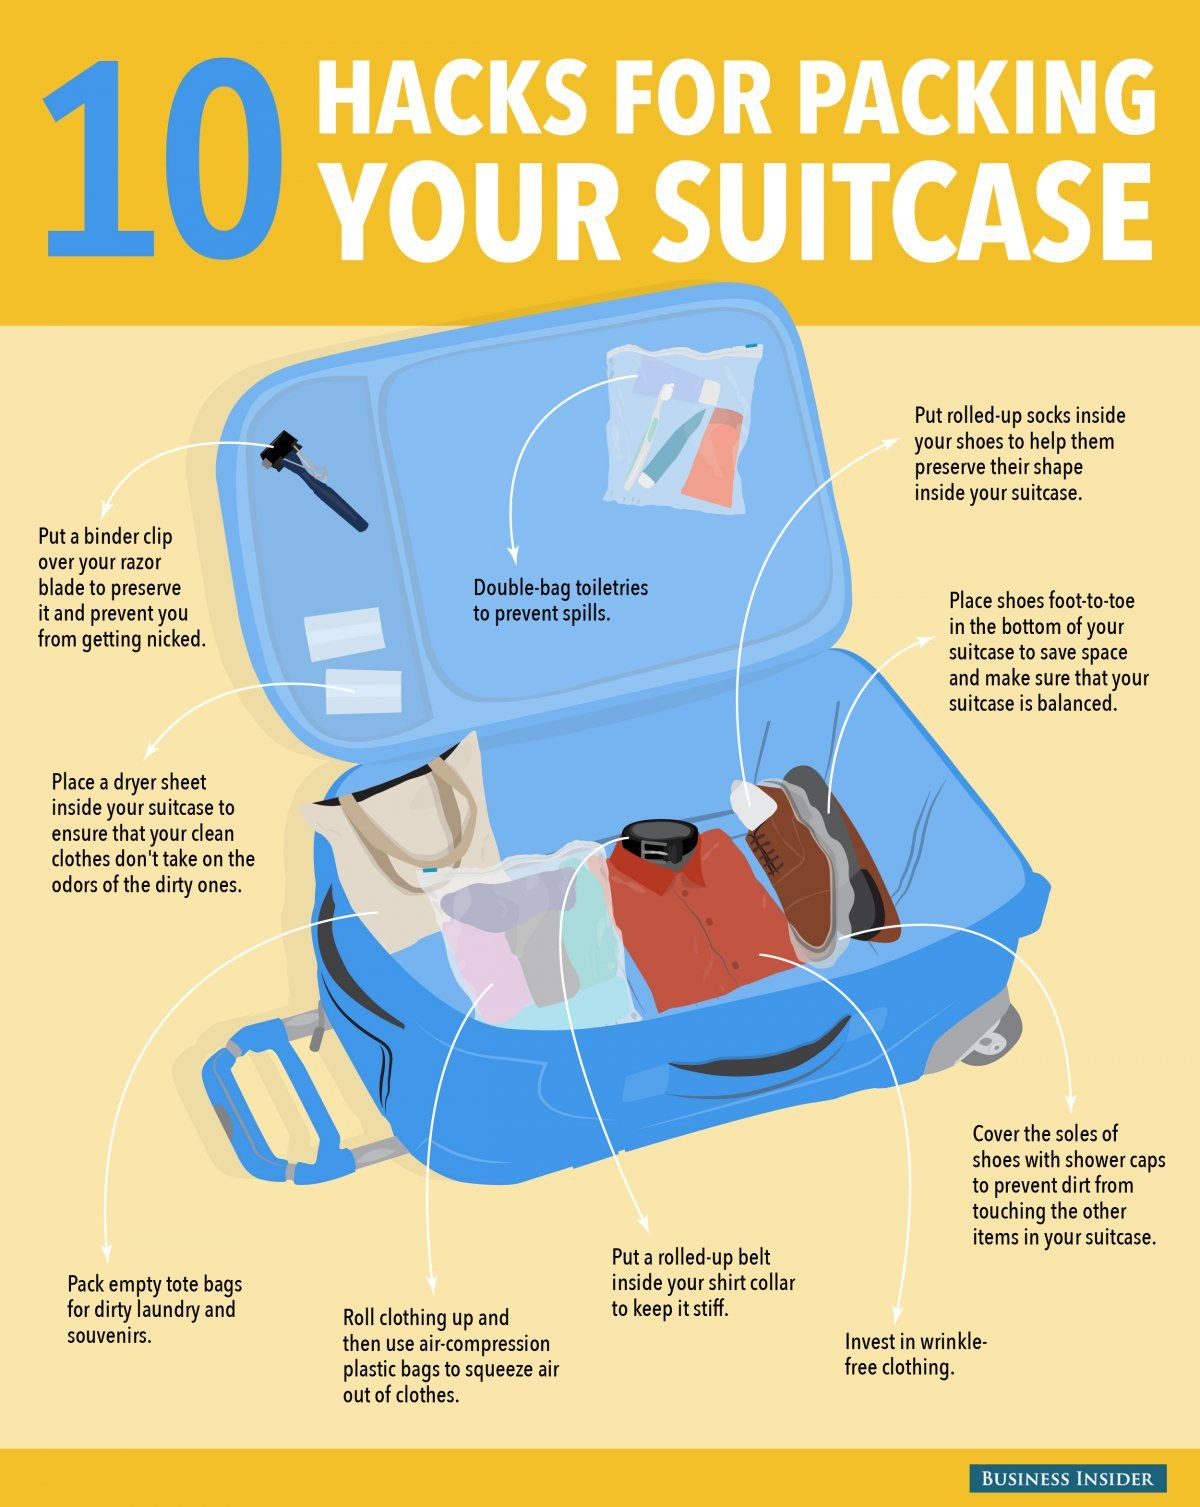 The Right Way To Pack A Suitcase Infographic Check And Suitcase - Simple trick changes everything knew packing t shirts just brilliant